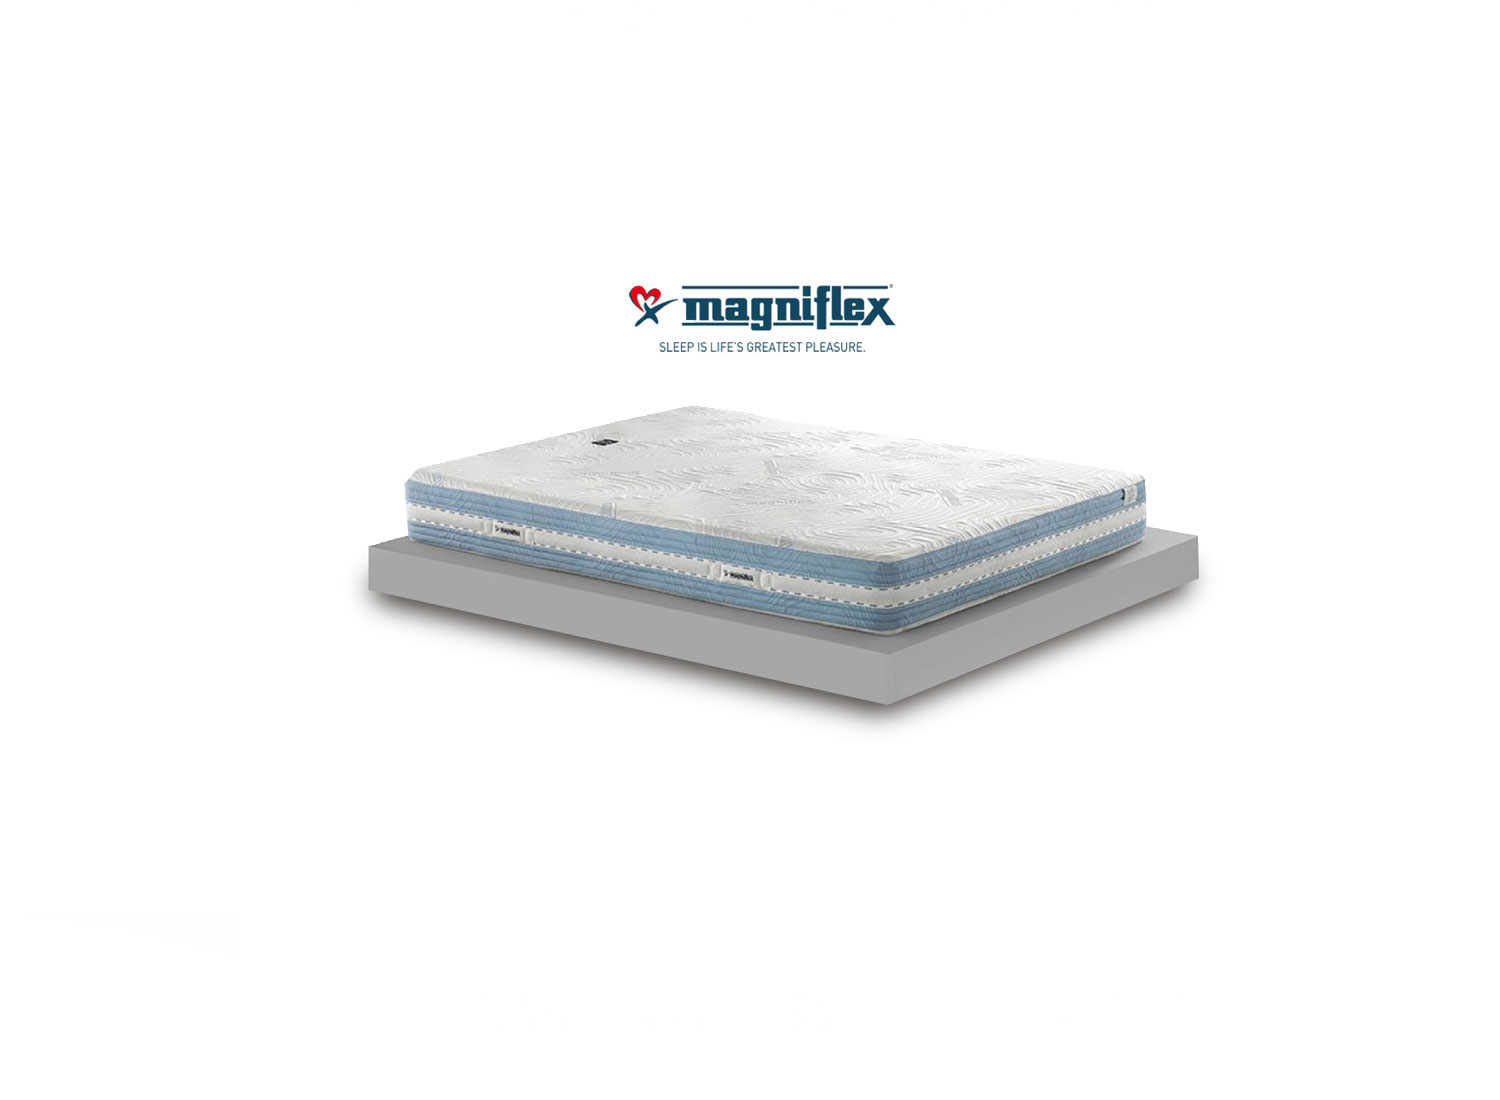 Picture of: Magniflex Magnigel Dual 9 Memory Foam Mattress Expand Furniture Folding Tables Smarter Wall Beds Space Savers